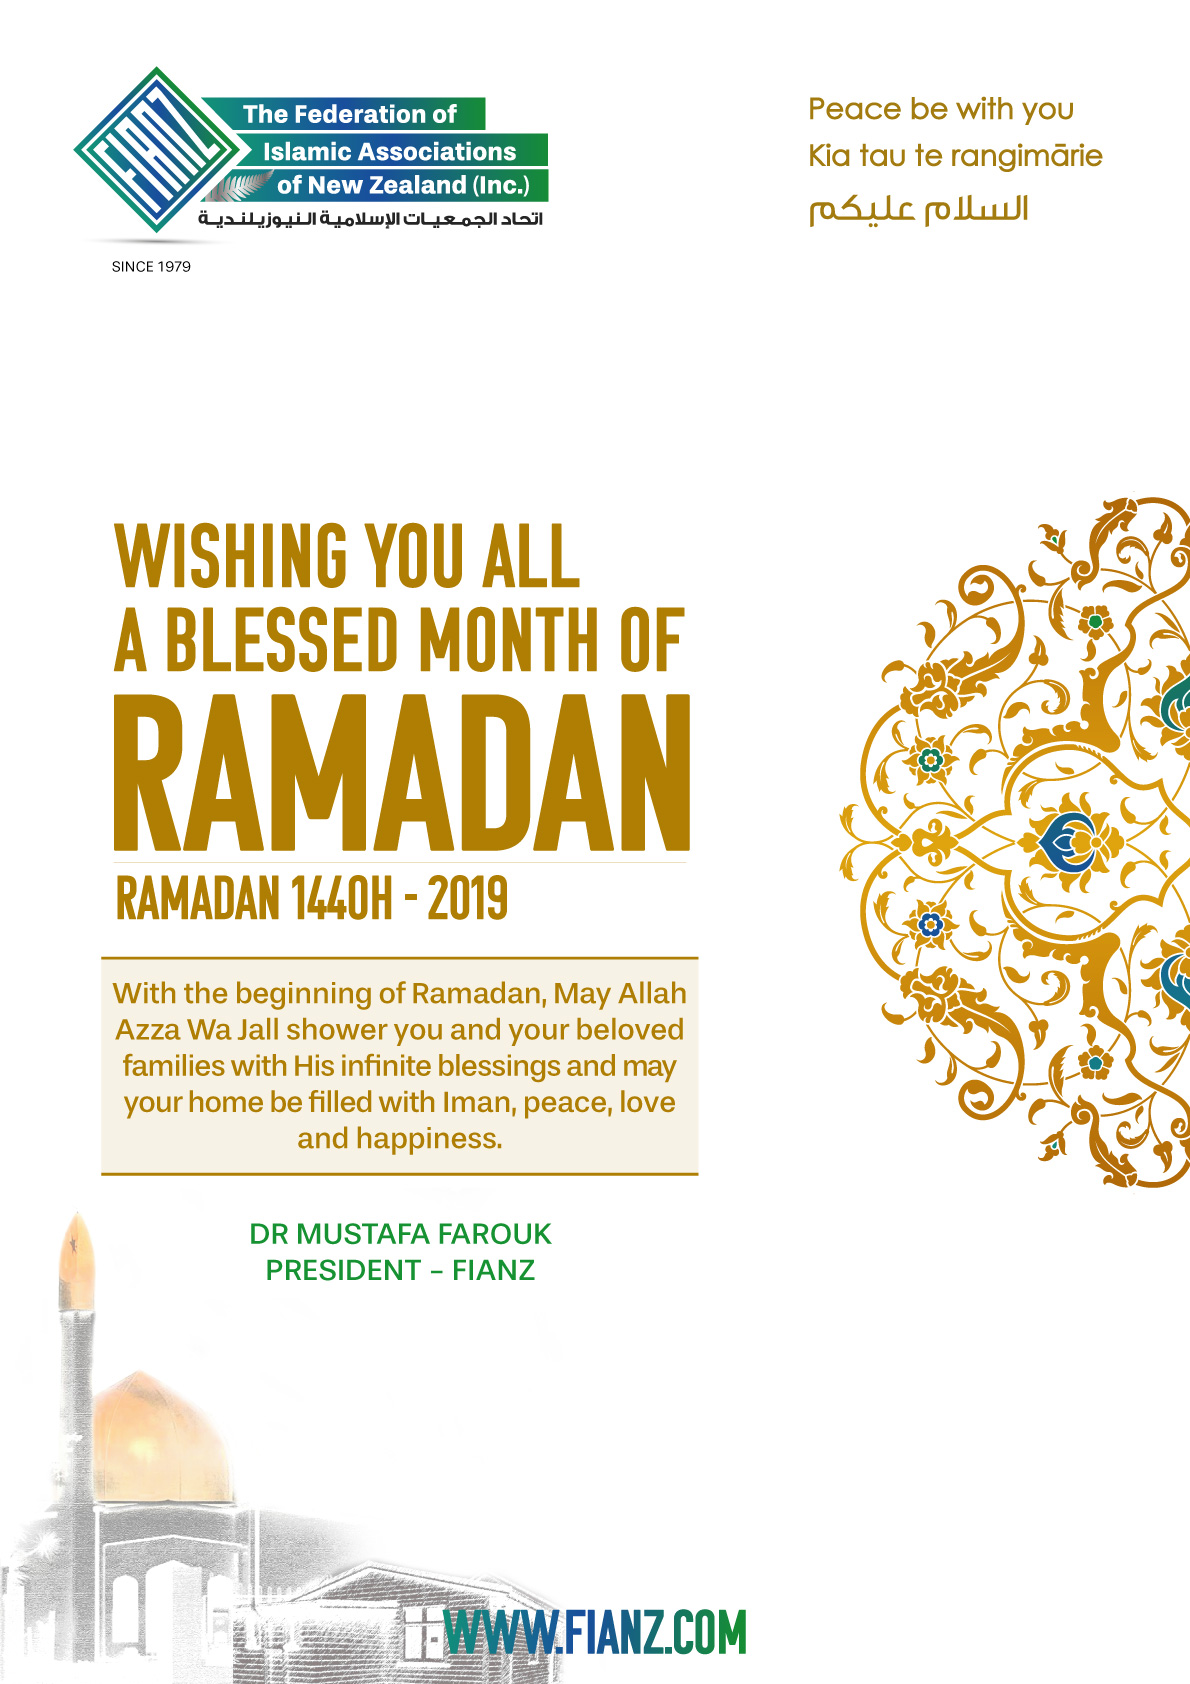 Ramadhan – The Federation of Islamic Associations of New